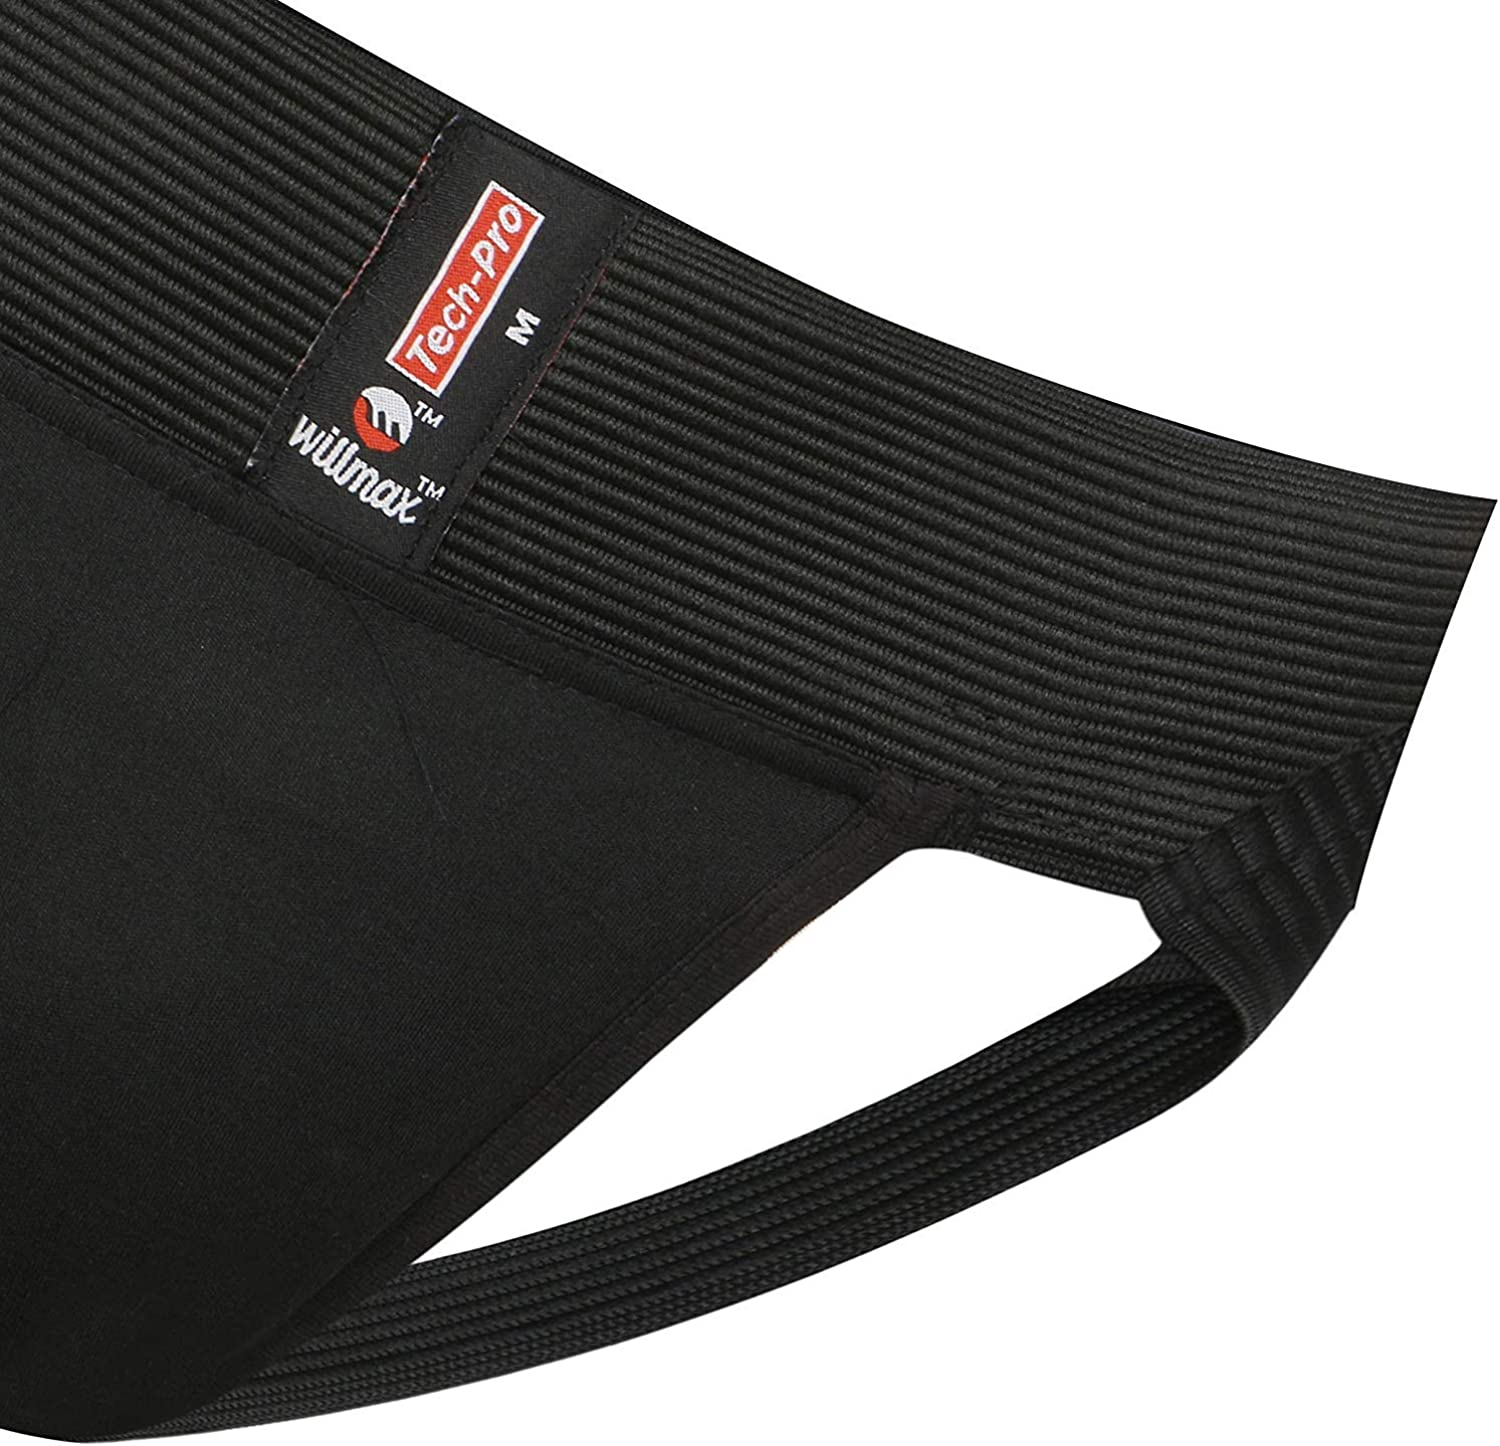 KD Willmax Jockstrap Gym Cotton Supporter with Cup Pocket Multi Sport: Clothing